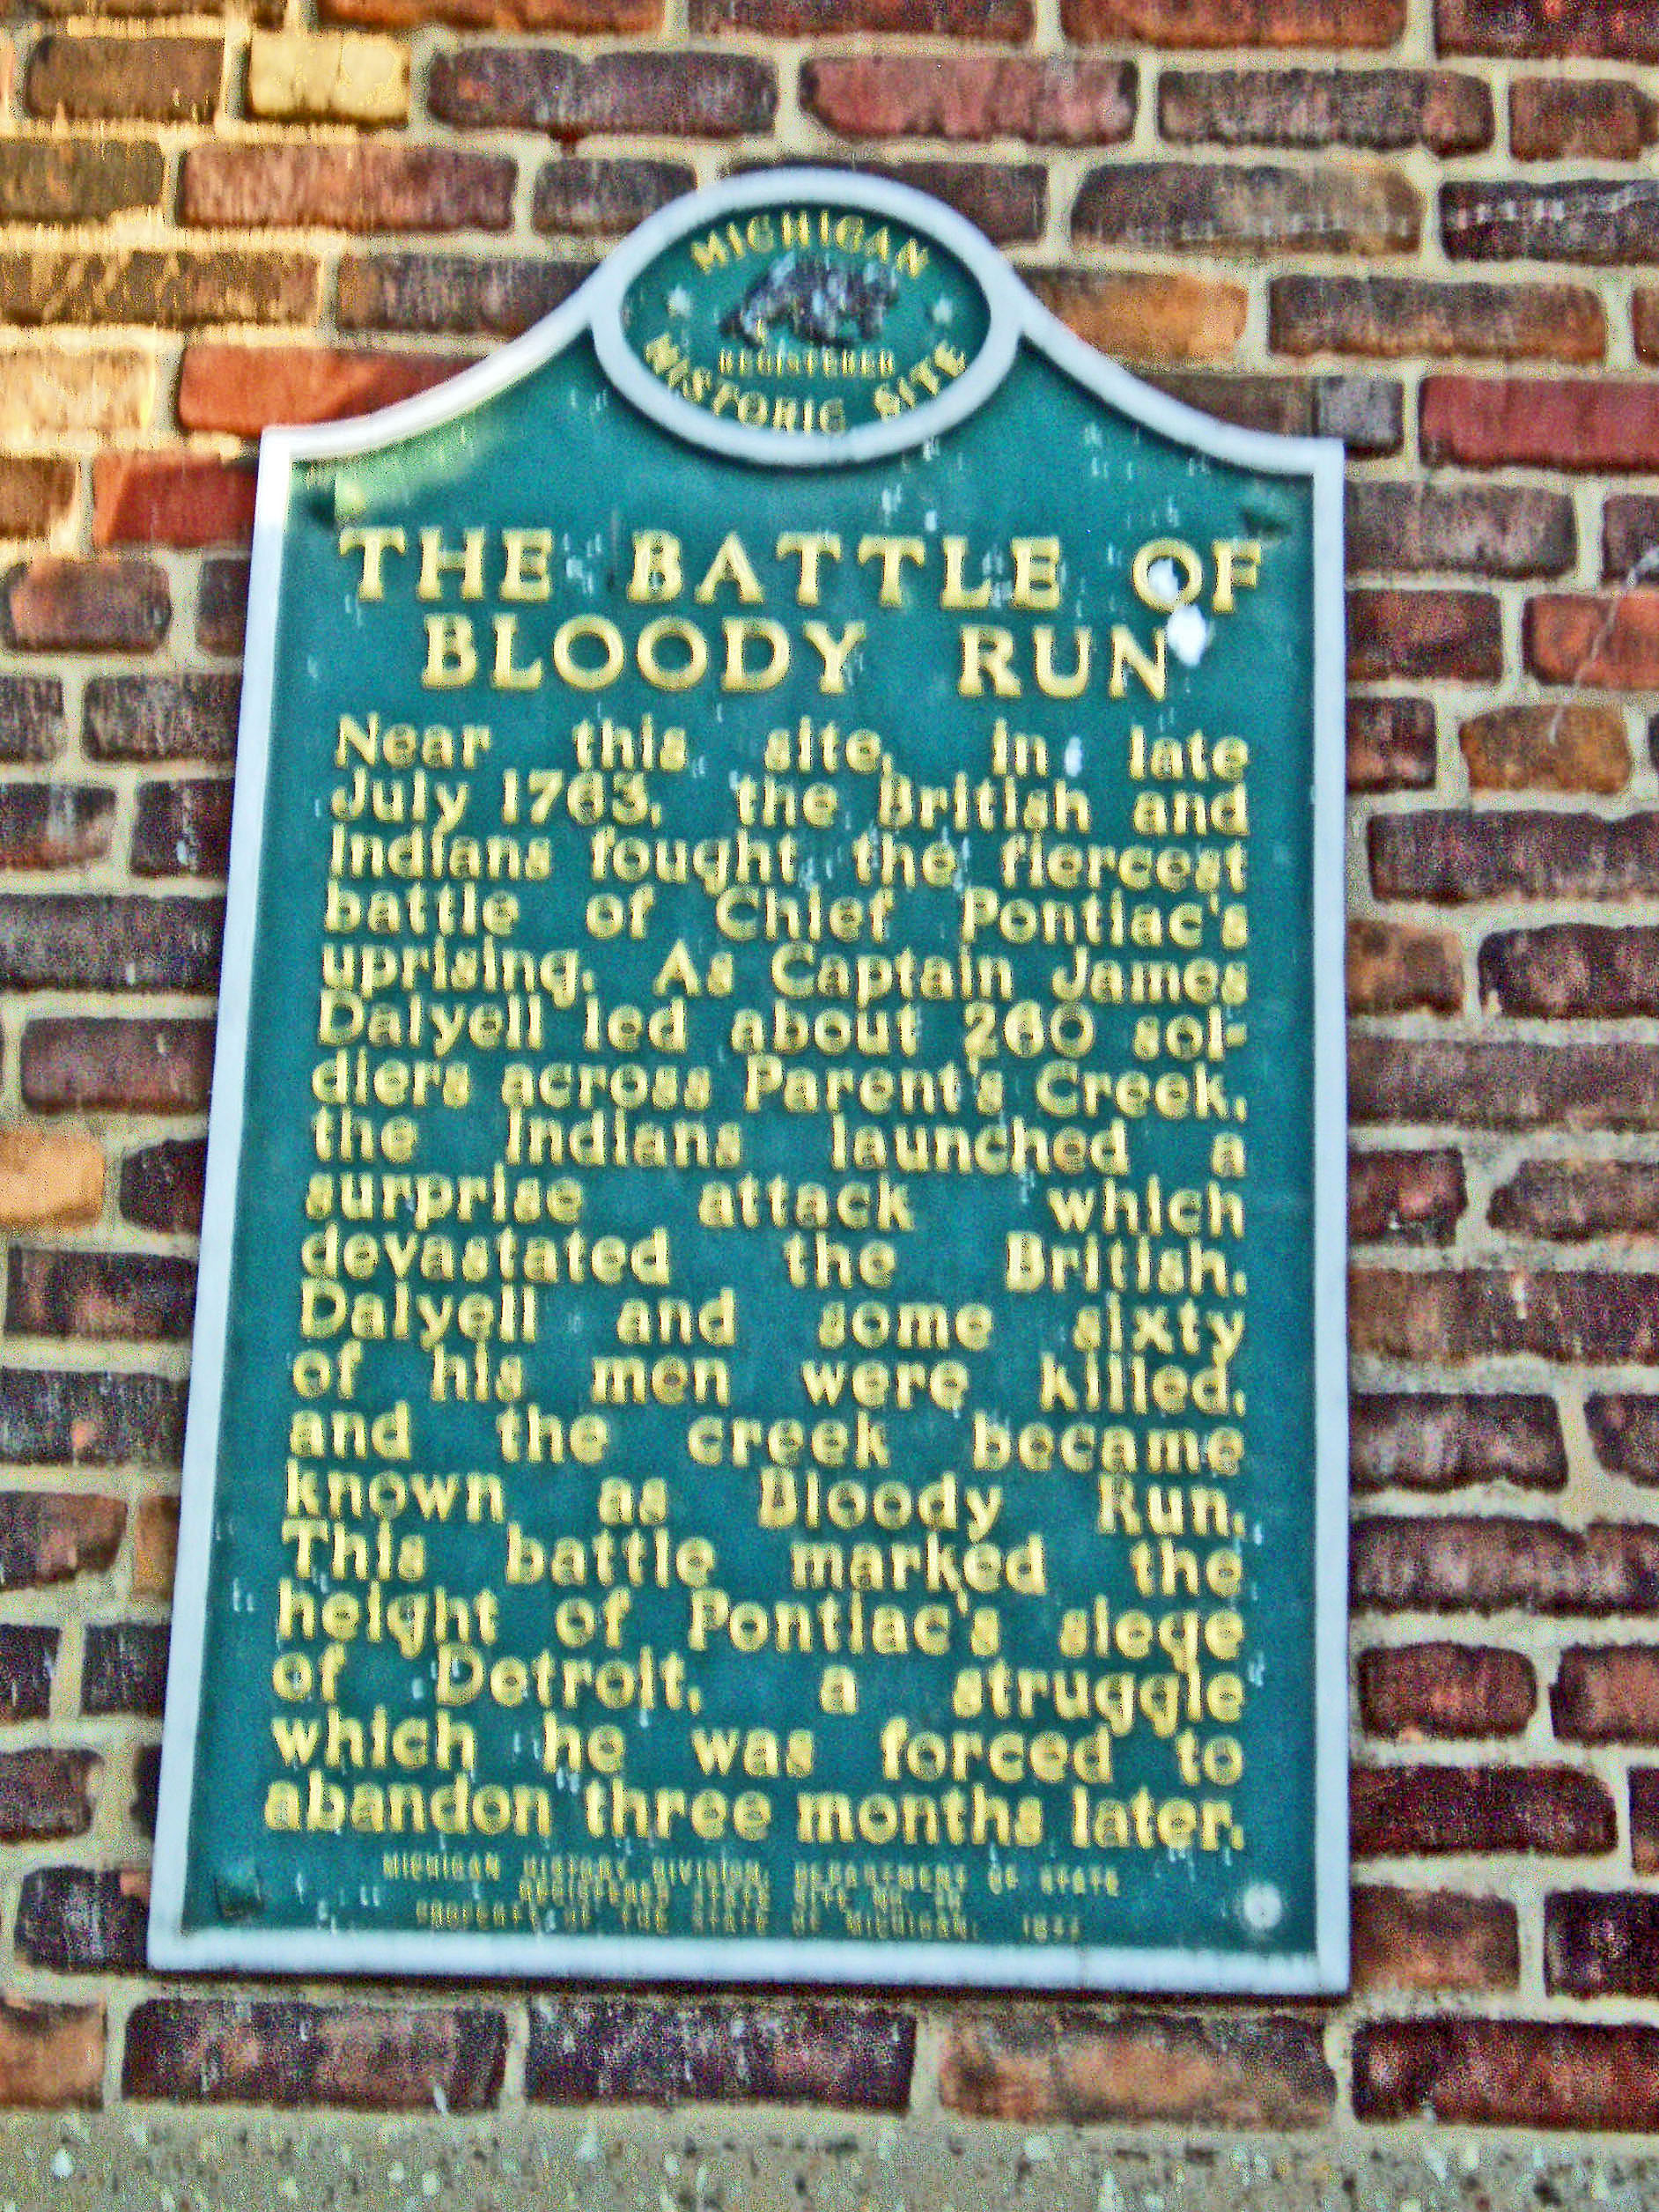 1763 : The Battle of Bloody Run